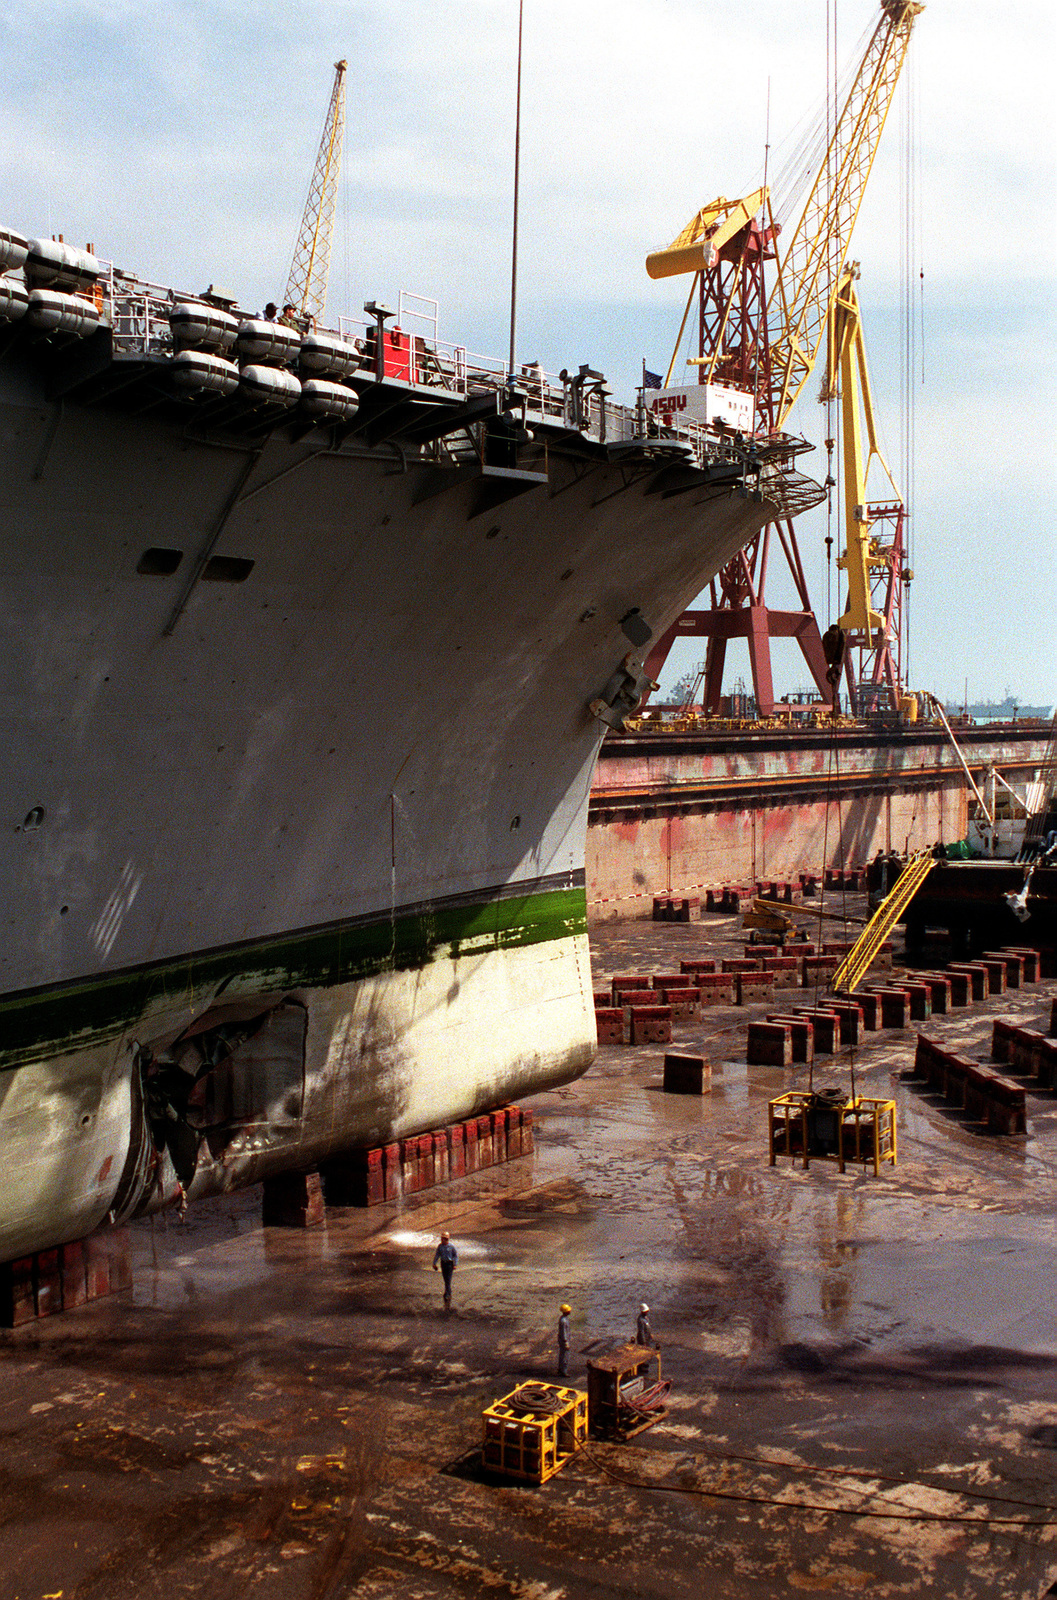 A view of the bow of the amphibious assault ship USS TRIPOLI (LPH-10) as the ship lies in dry dock, showing the damage inflicted by an Iraqi mine. The TRIPOLI struck the mine on February 18 while serving as a mine-clearing platform in the northern Persian Gulf during Operation Desert Storm. The ship was able to continue operations after damage control crews stopped the flooding caused by the explosion